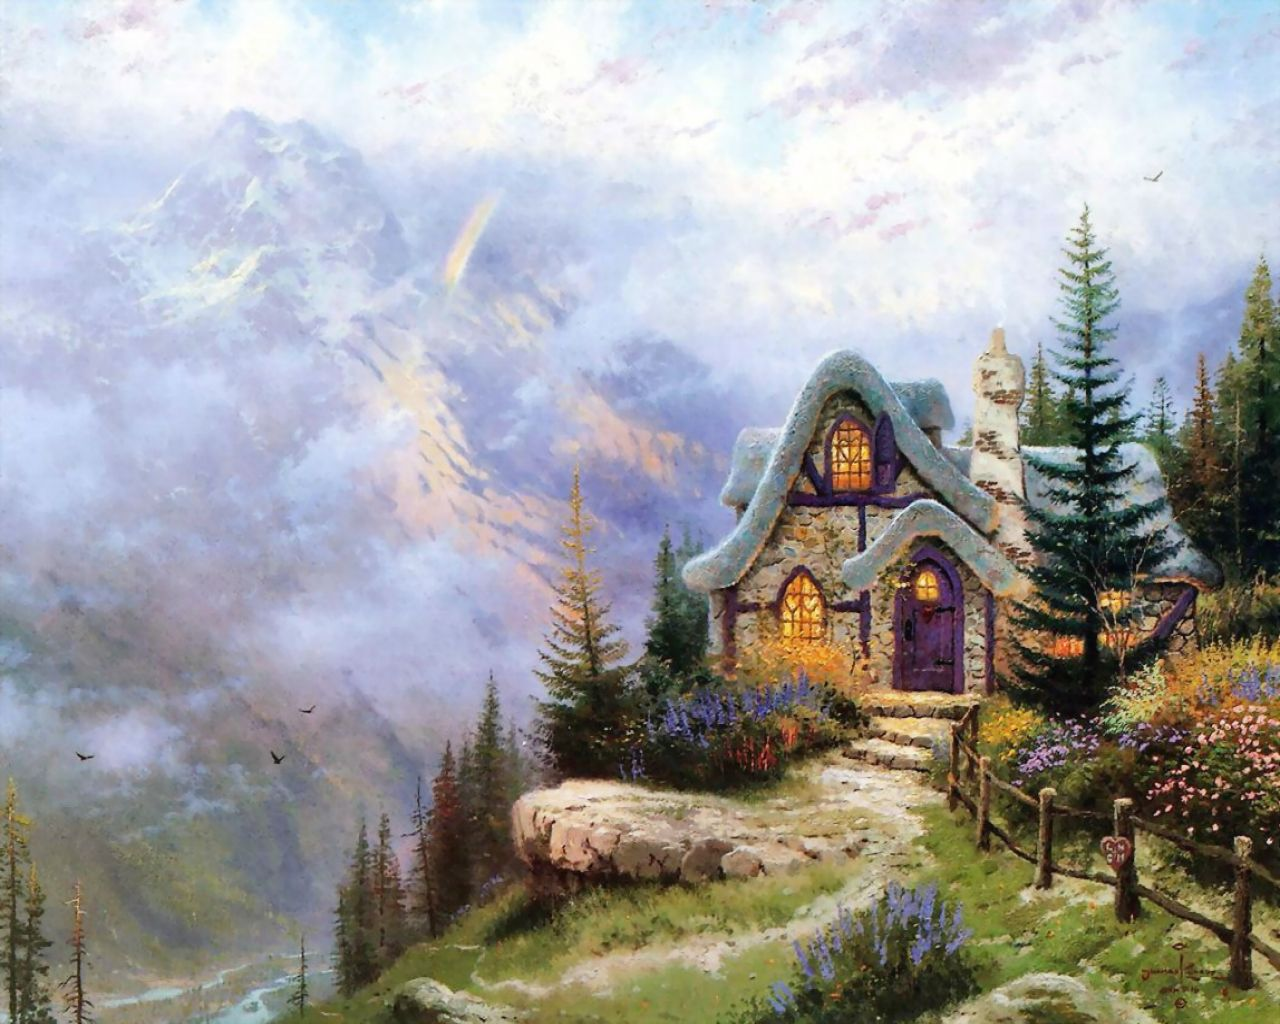 Thomas Kinkade - a house in the mountains